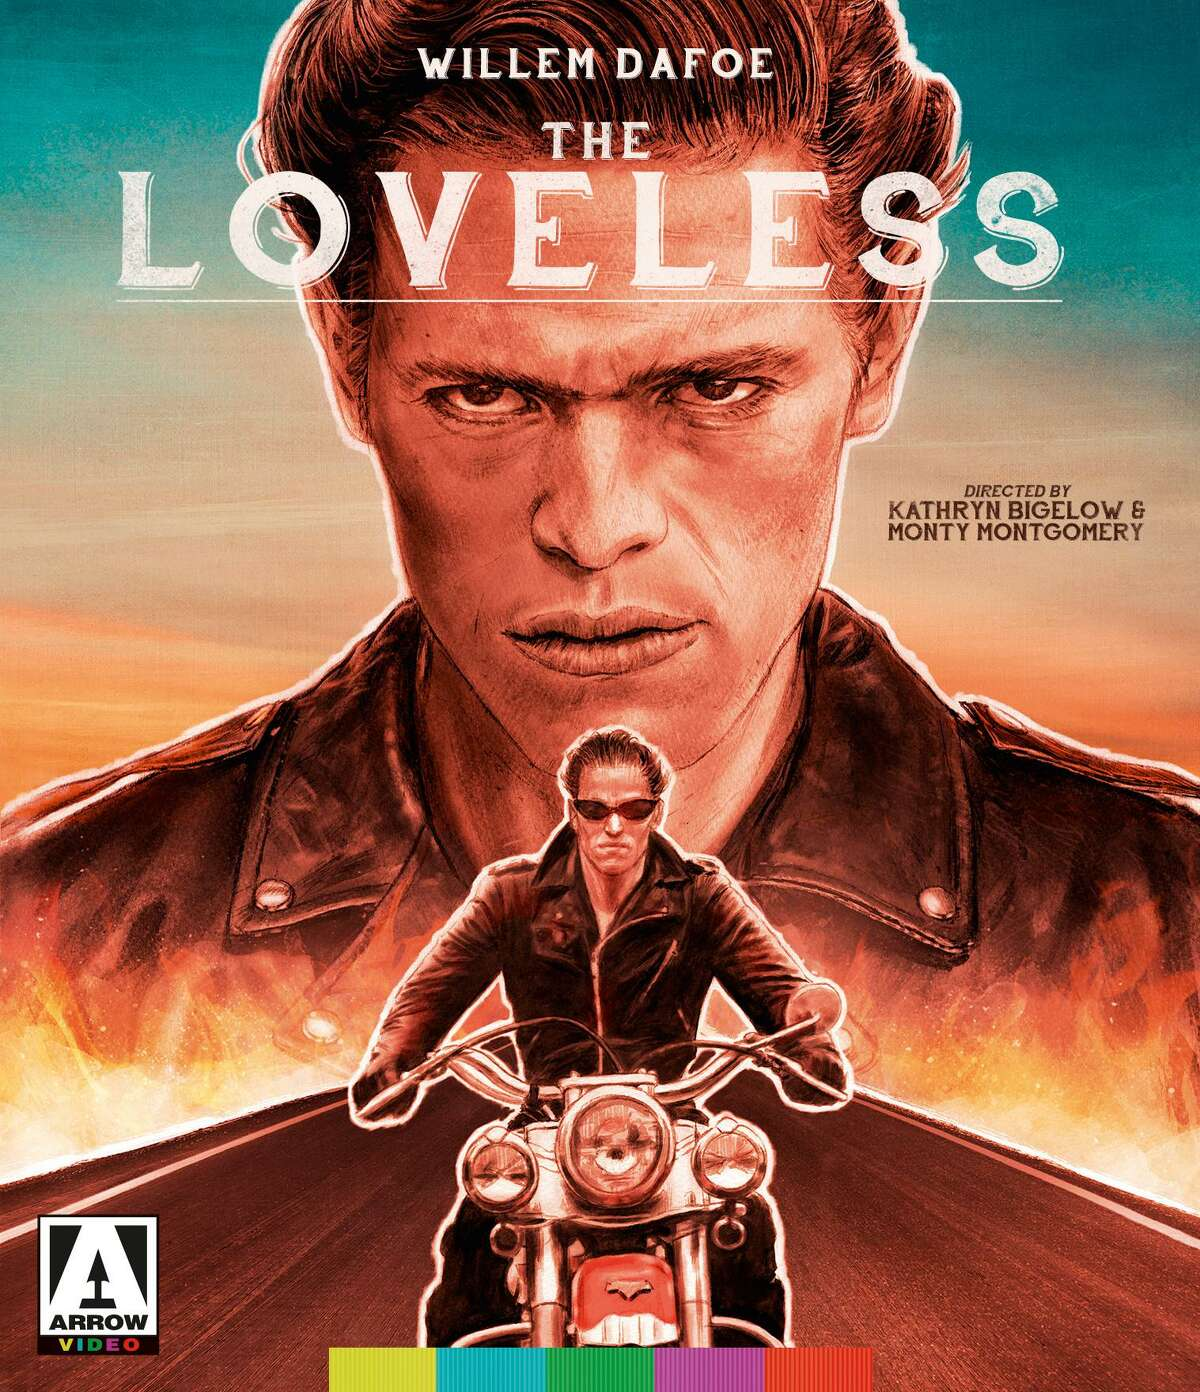 Willem Dafoe's first starring role was as a biker stranded in a Southern town in